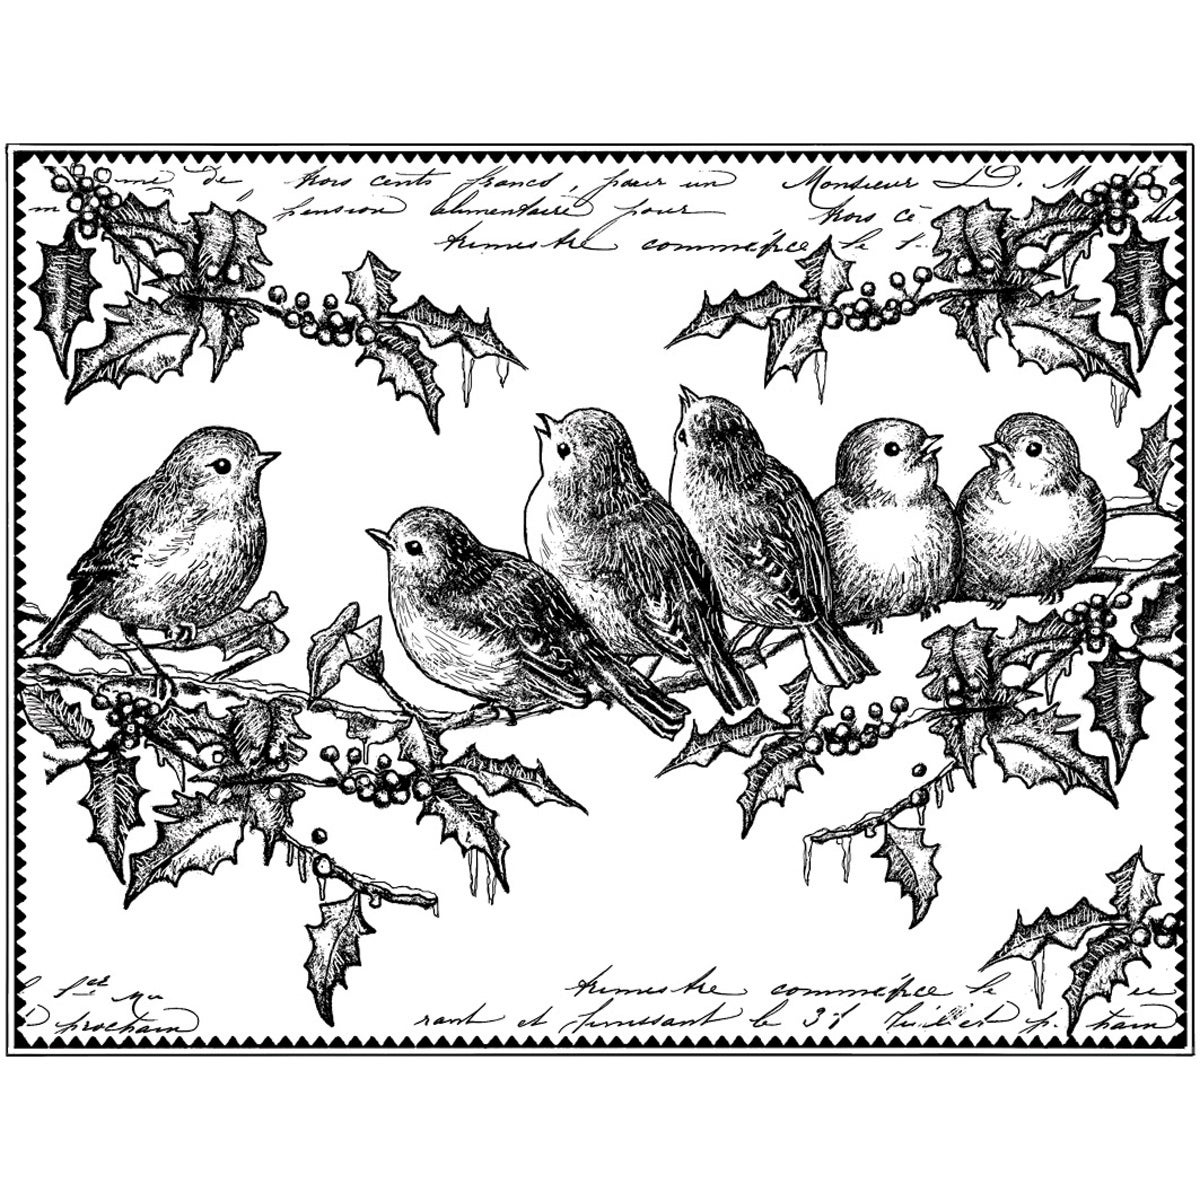 Crafty Individuals Unmounted Rubber Stamp 4.75inX7in Pkg Holly Jolly Robins (Holly Jolly Robins), Black/White